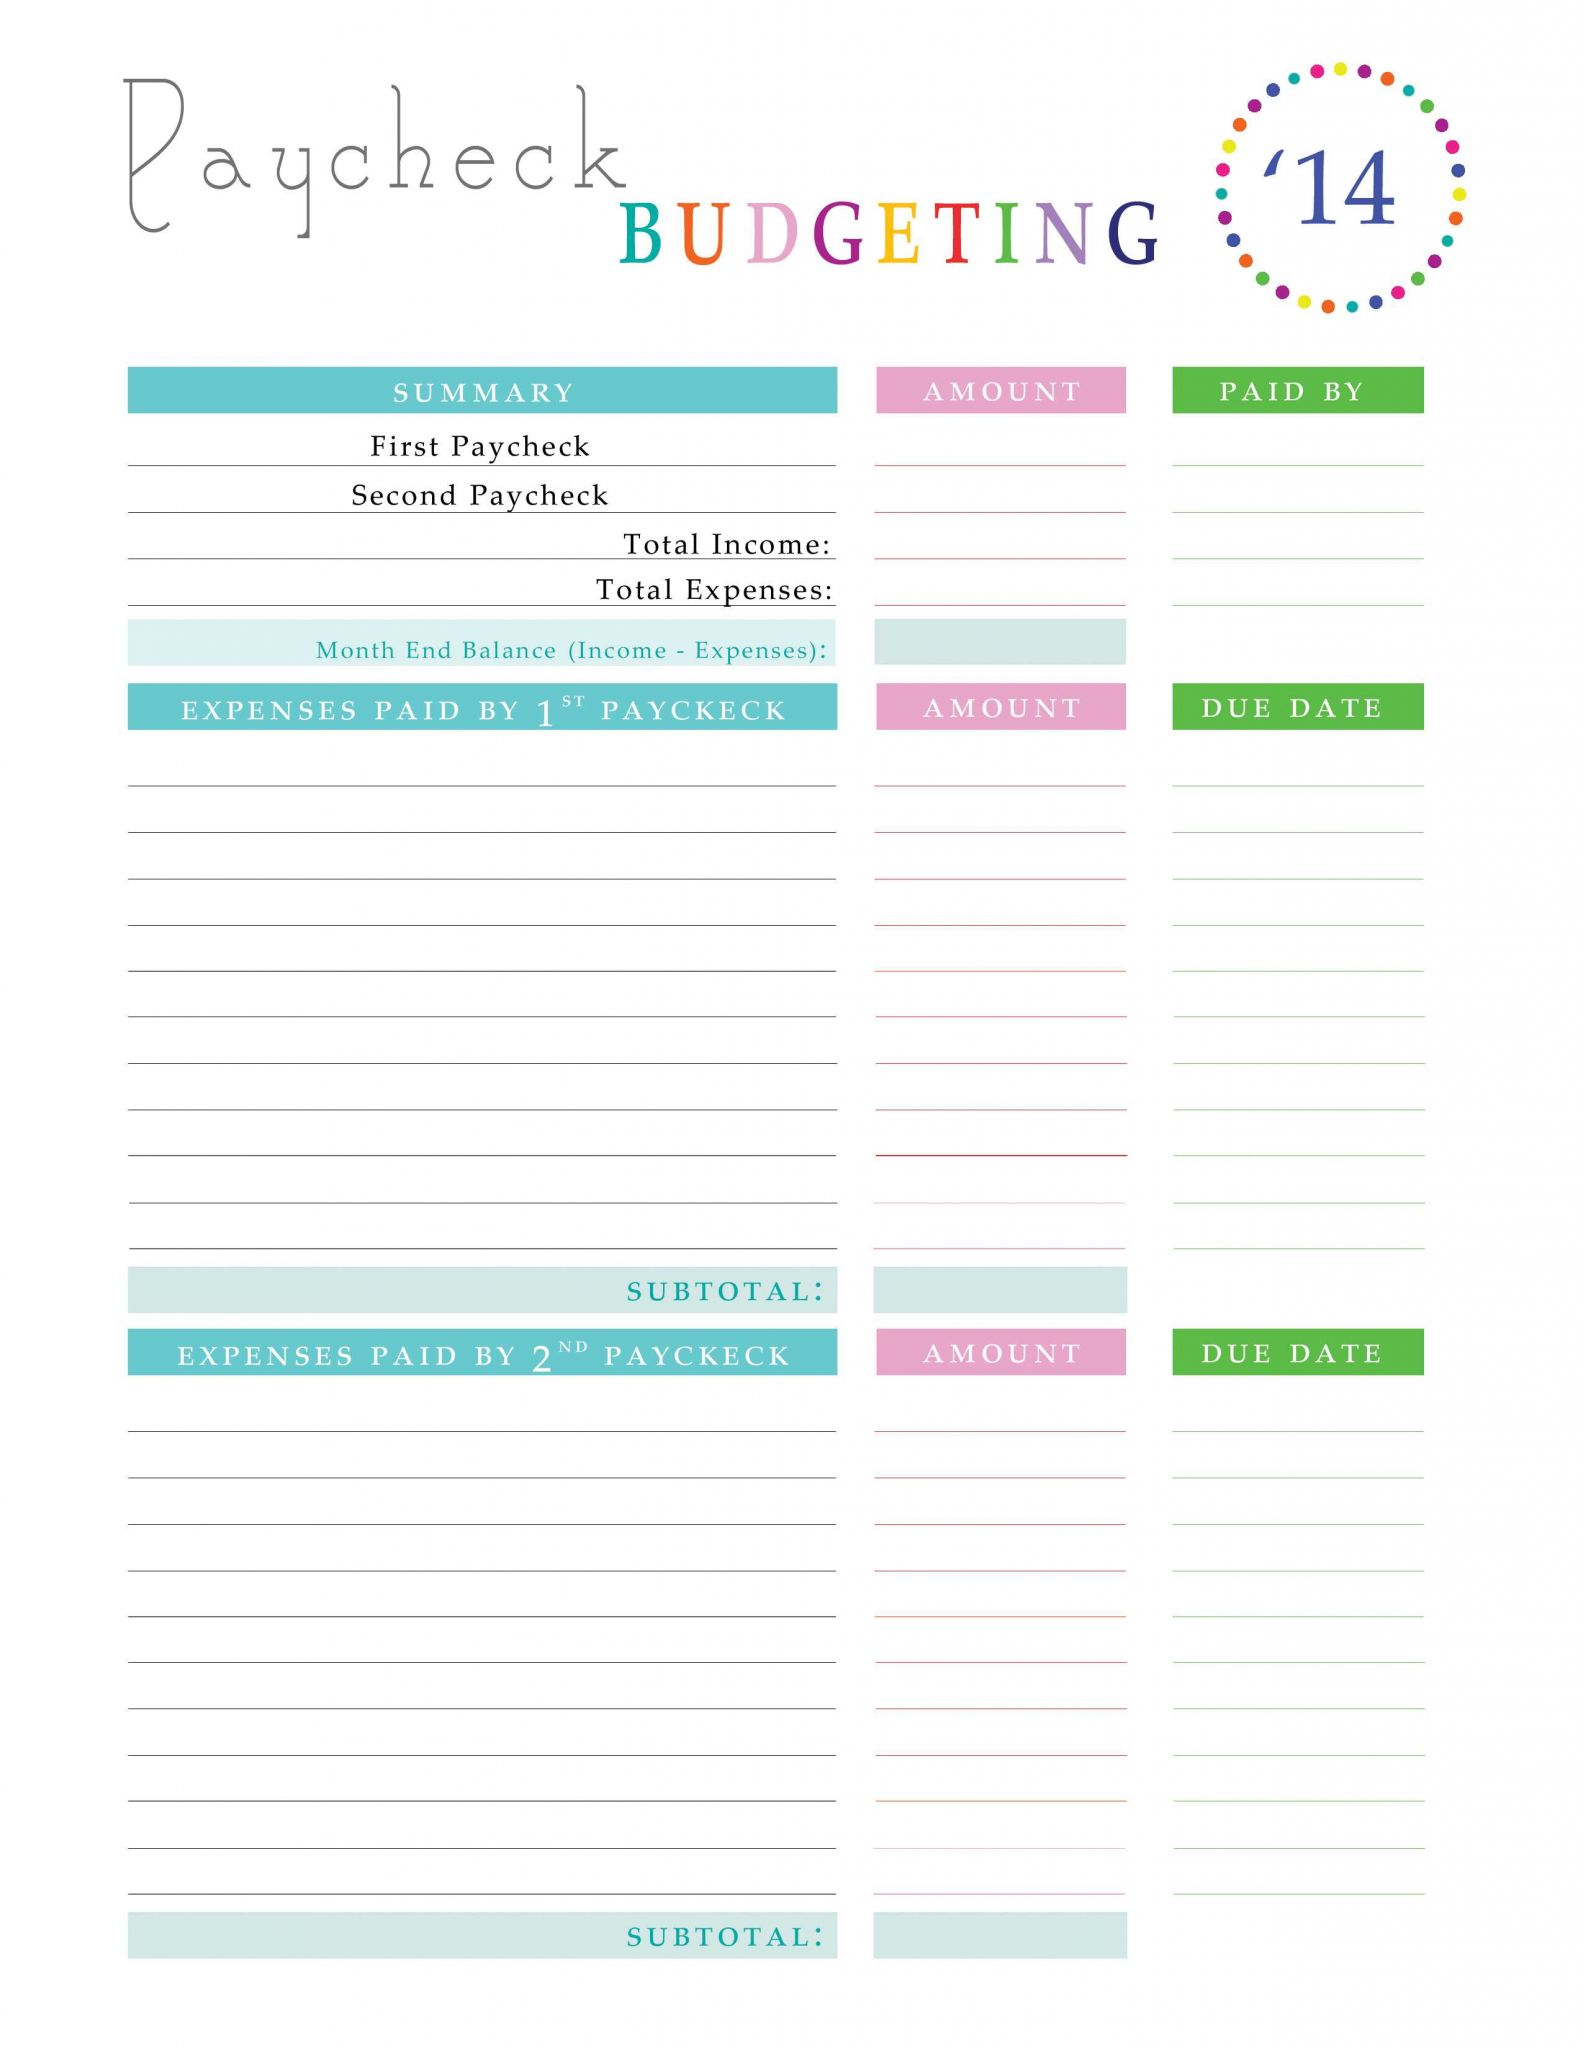 Free Printable Budget Binder Worksheets as Well as Paying Off Debt Worksheets Pinterest